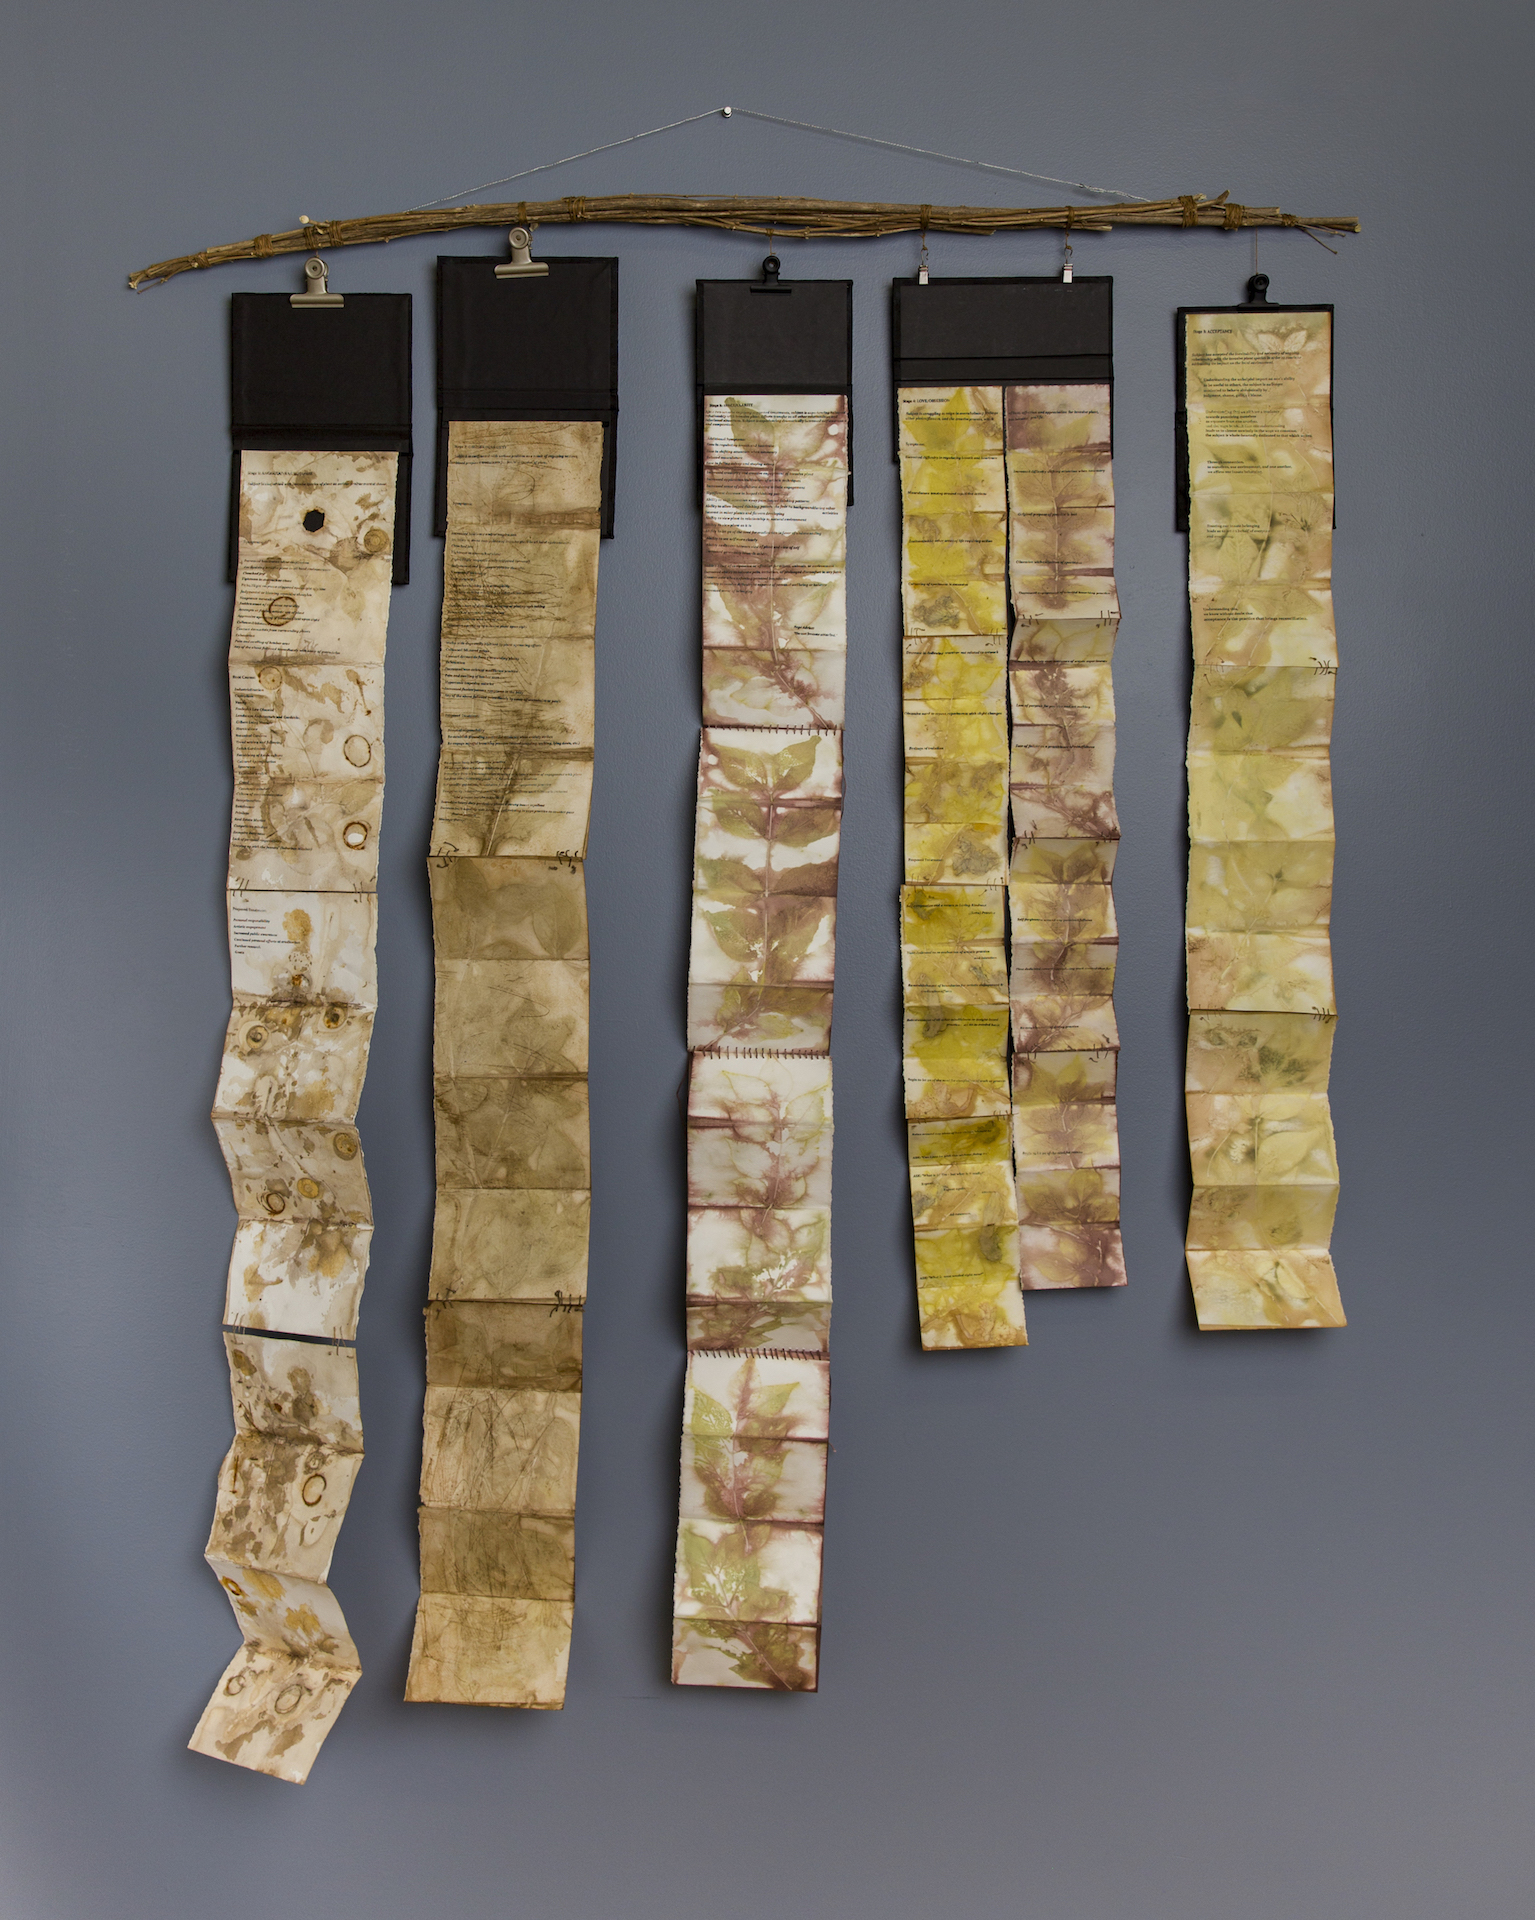 """""""Jeongyu"""" Natalie Turner-Jones, """"The Five Stages of Reconciliation,""""Eco-printed Japanese Bush Honeysuckle, Linen, Original Text, Deadfall twigs"""